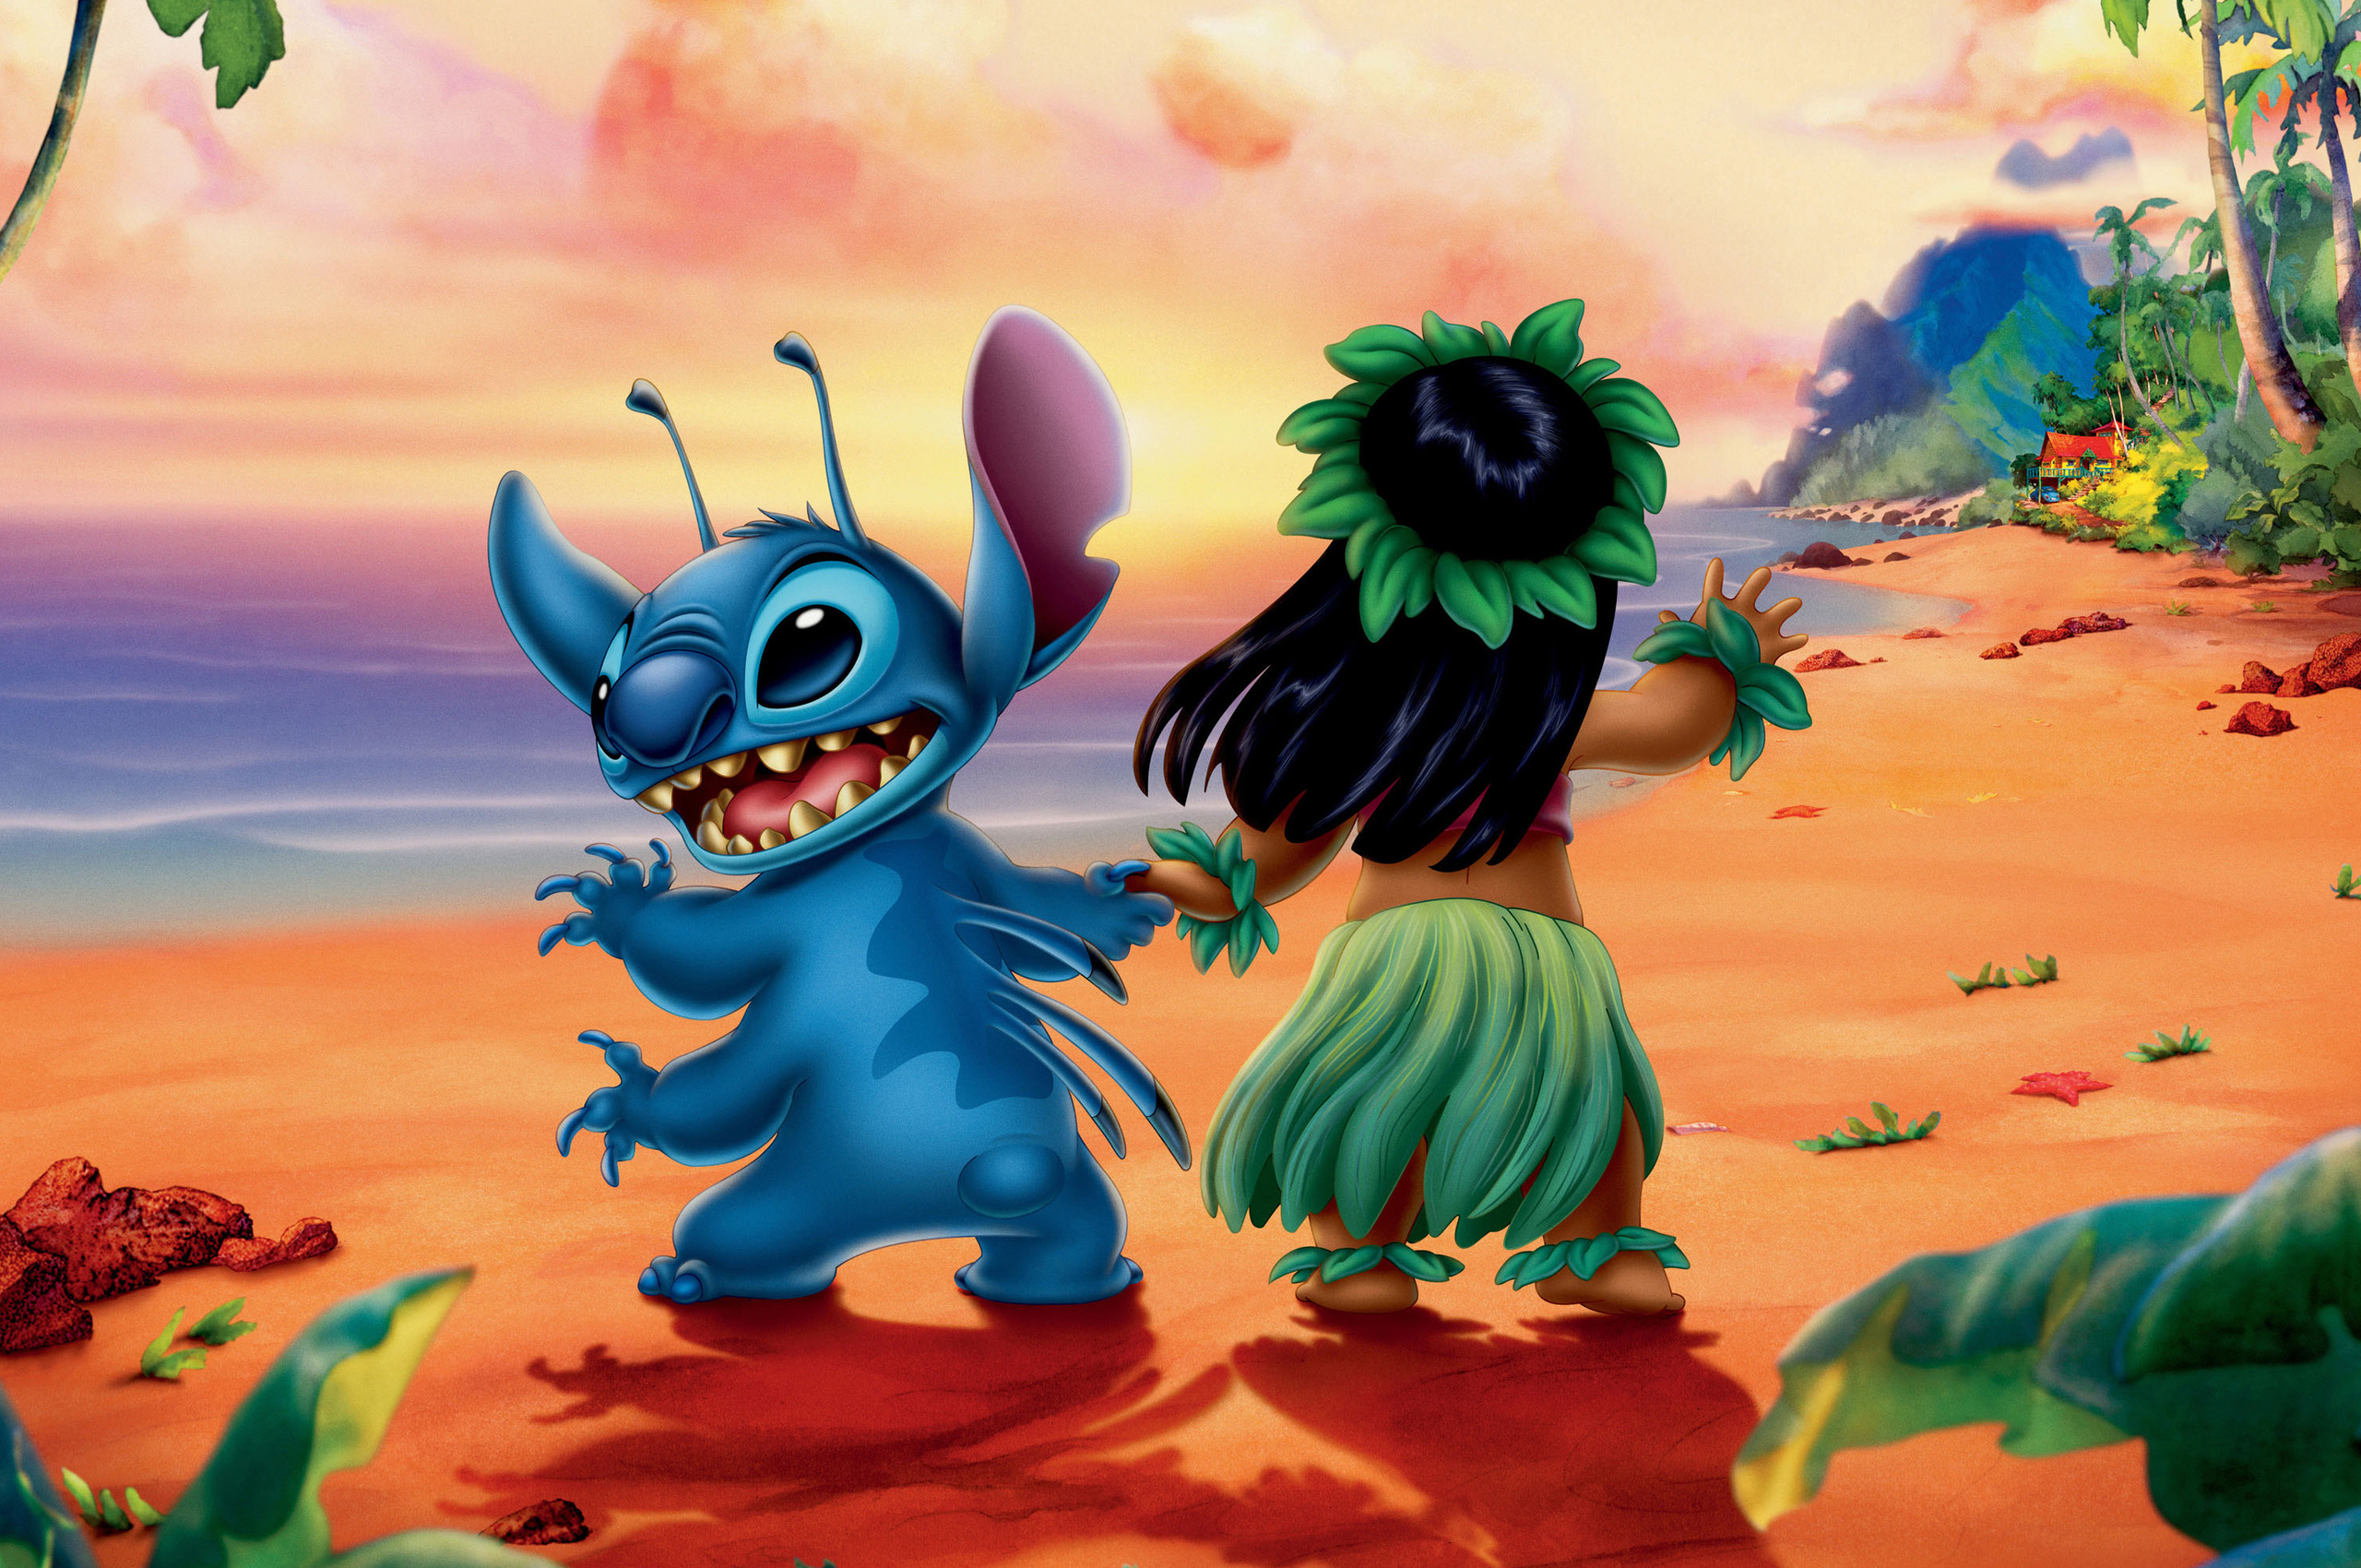 2560x1700 Lilo And Stitch Chromebook Pixel Hd 4k Wallpapers Images Backgrounds Photos And Pictures